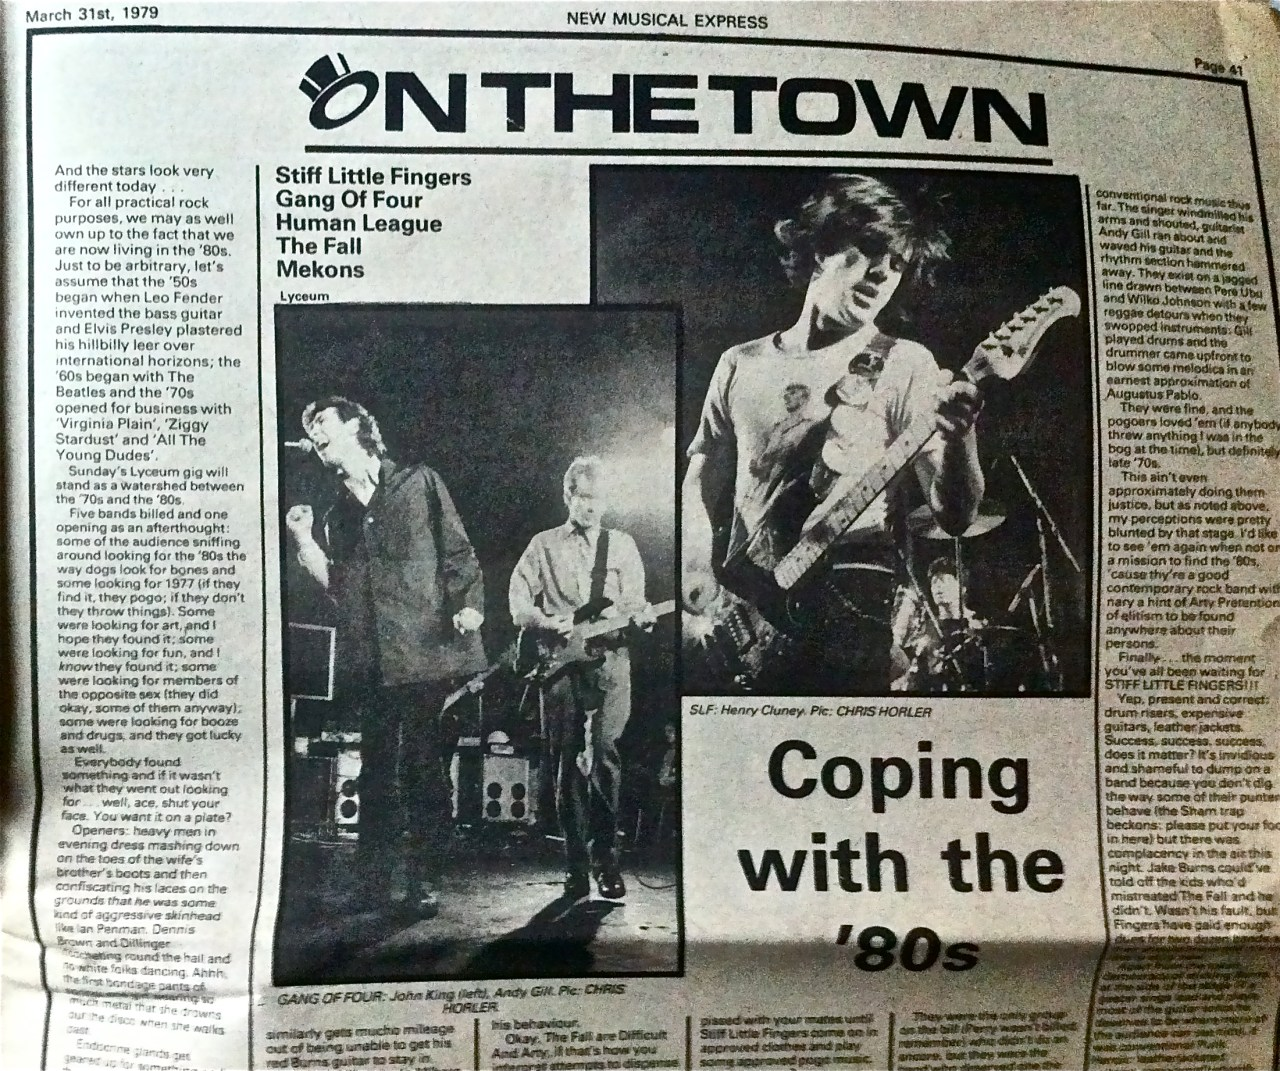 The night the 70s ended - says the NME